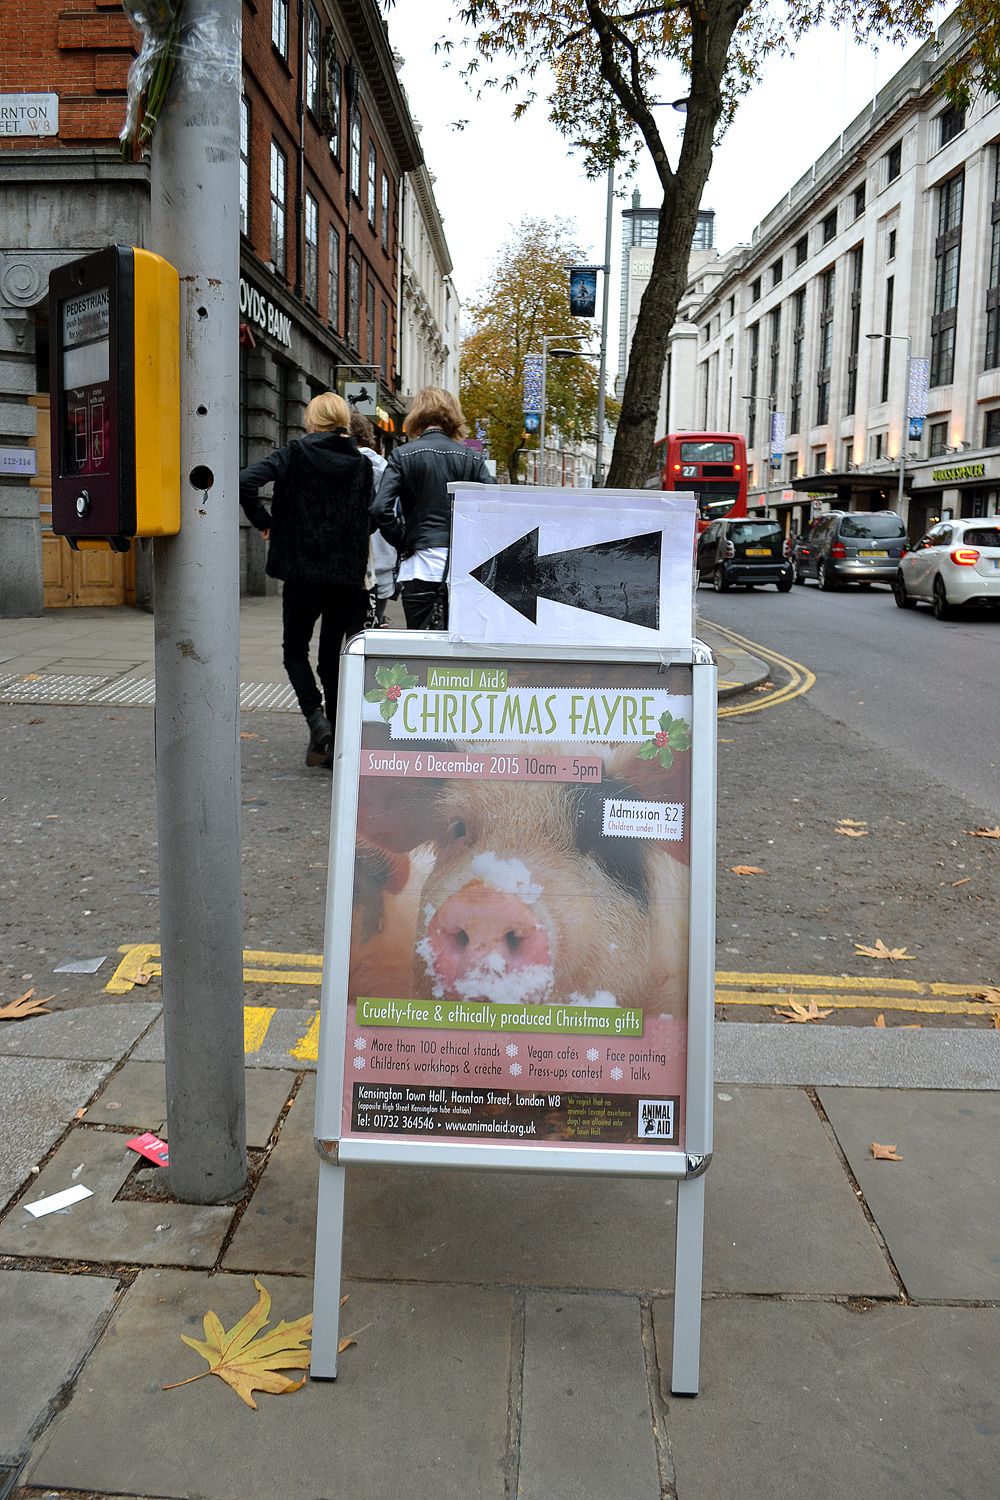 The router to the Christmas Fayre in Hornton Street. Photo: Barbora Sajmovicova, 2015.